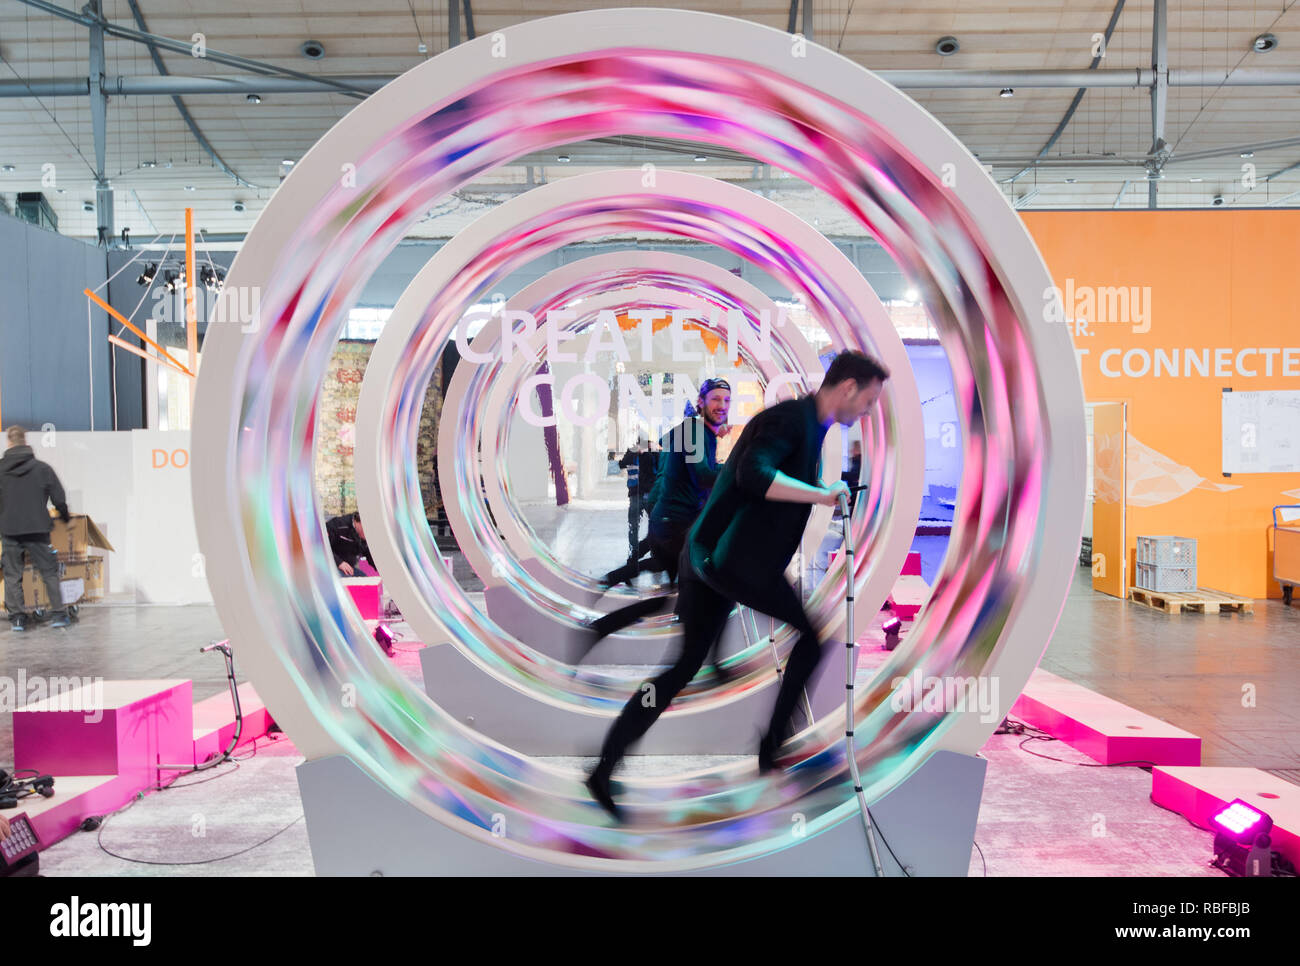 Hannover, Germany. 10th Jan, 2019. Two men run in wheels of the Schmidhuber agency with coloured carpets at the Domotex in the Hanover trade fair. The world's leading trade fair for carpets and floor coverings will take place from 11 to 14 January in Hanover. Credit: Julian Stratenschulte/dpa/Alamy Live News - Stock Image